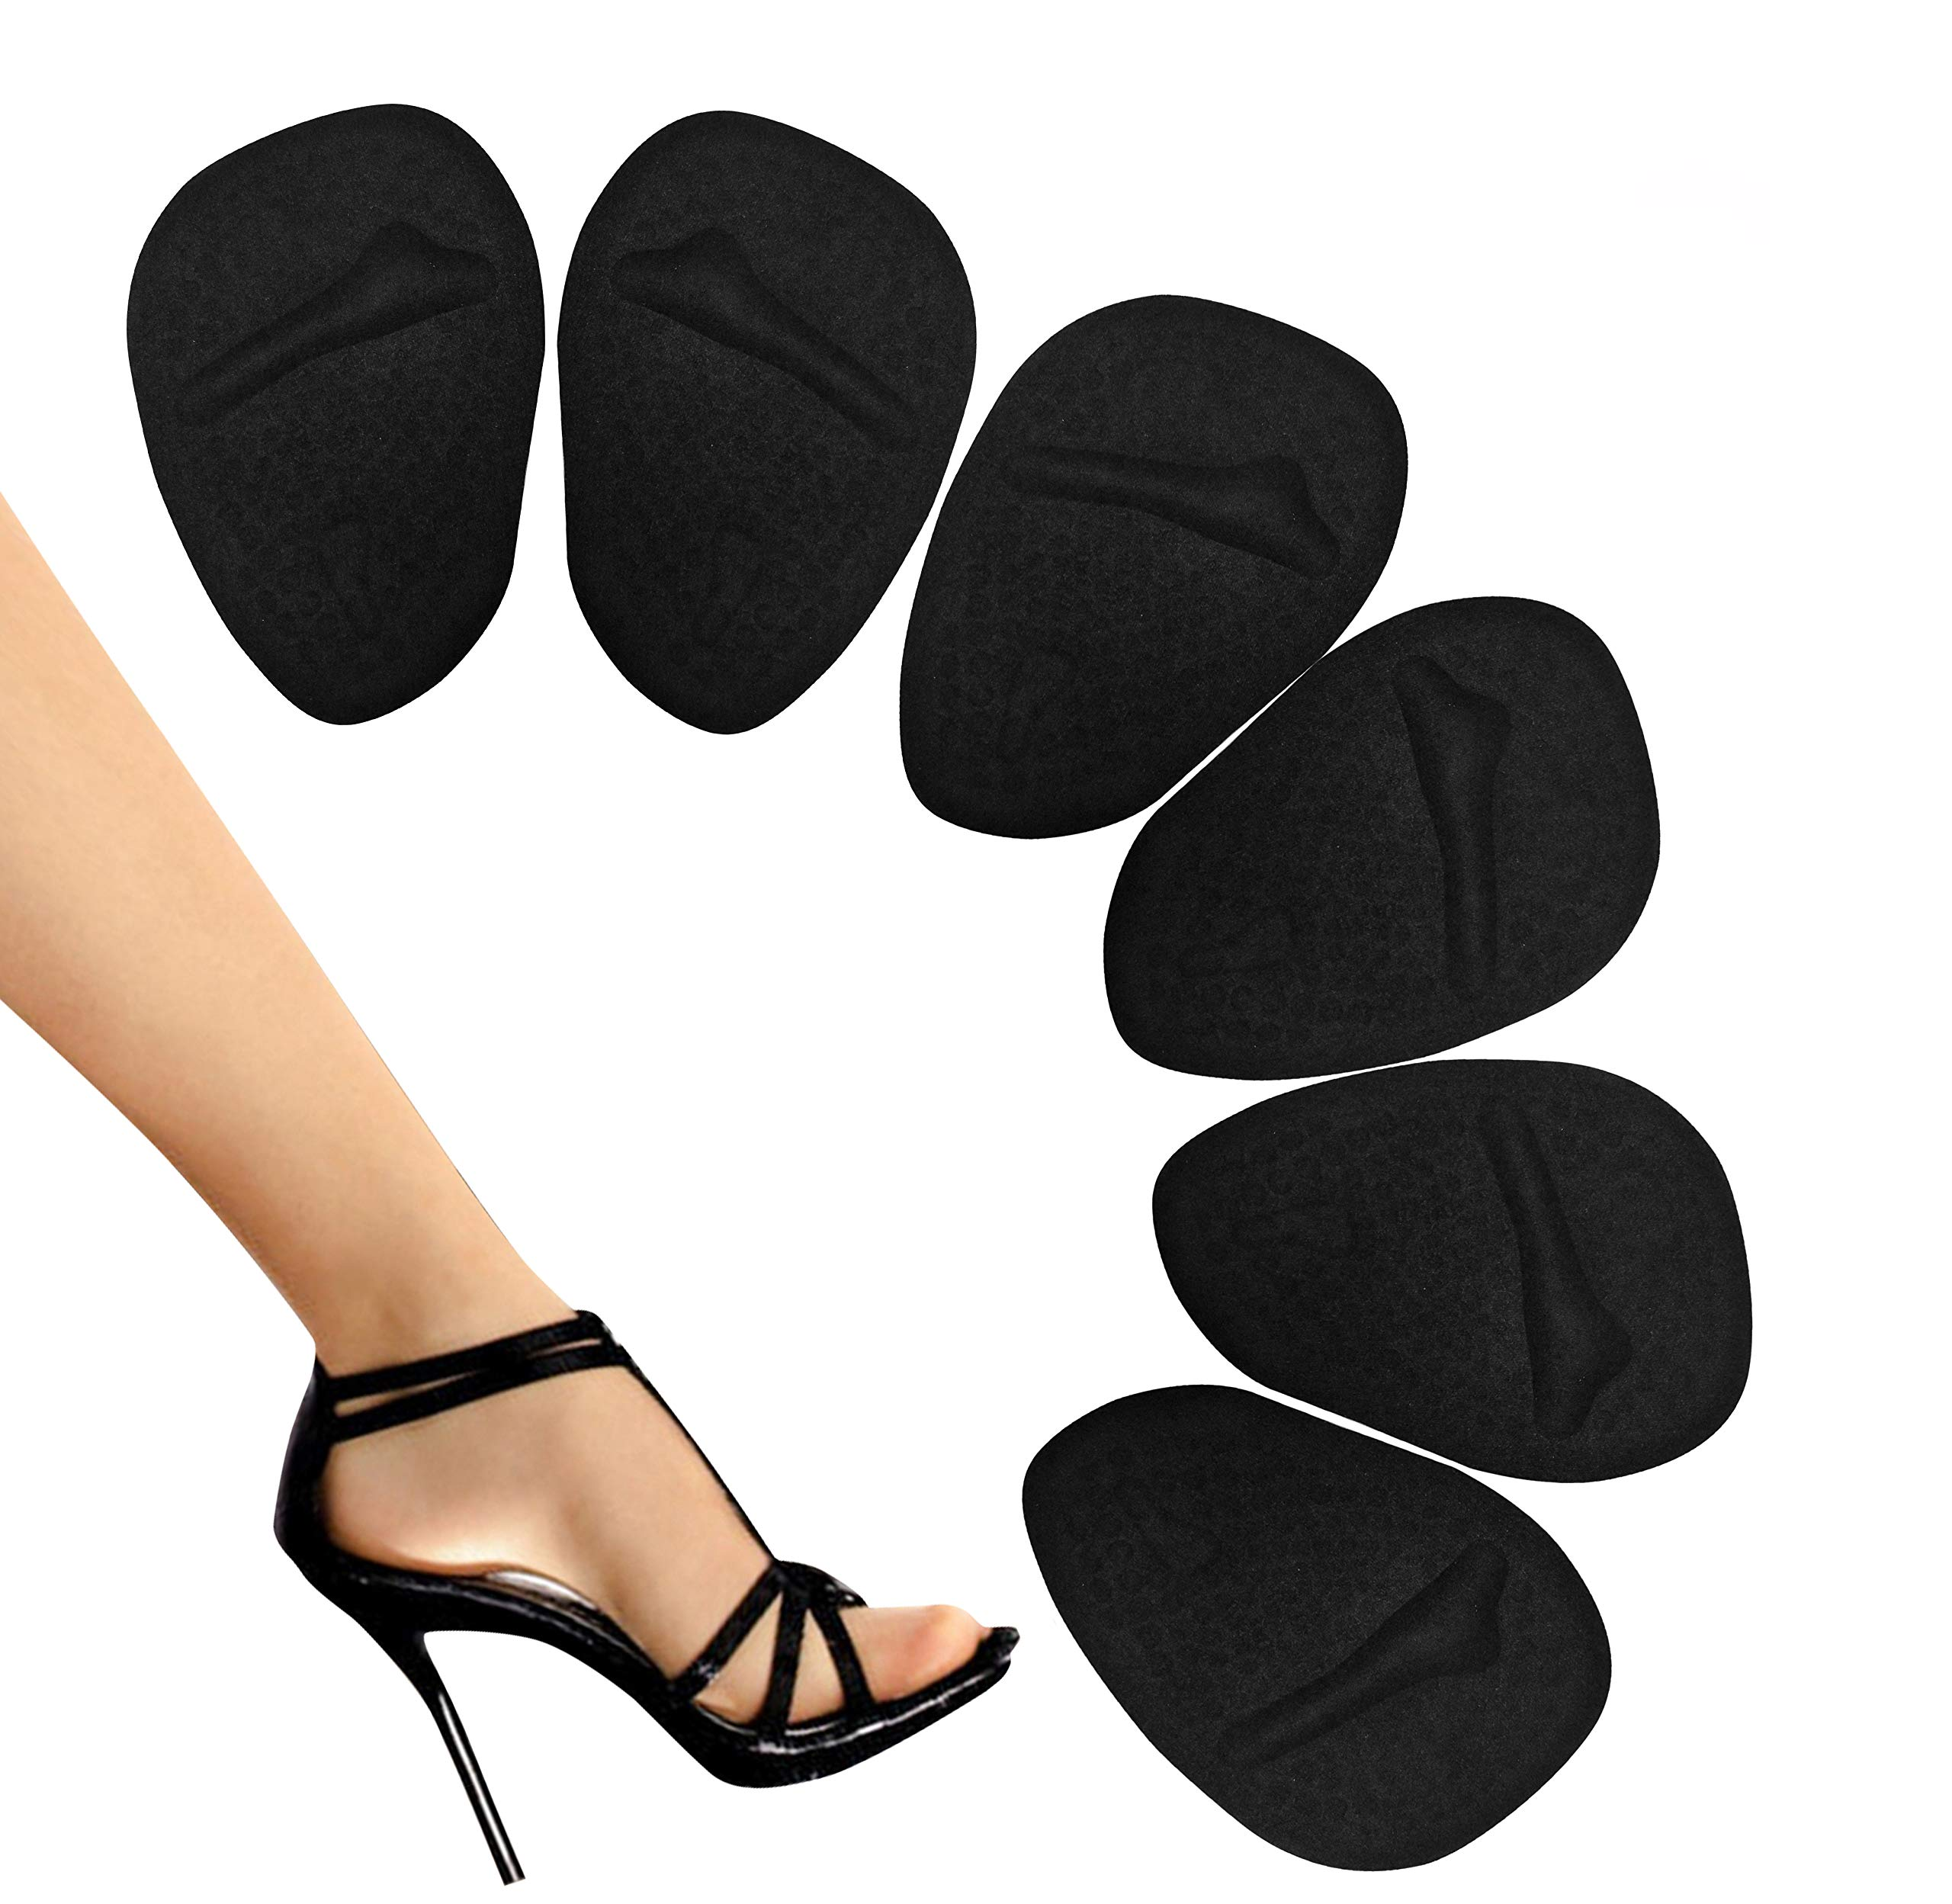 Metatarsal Pads - Ball of Foot Pads - Ball of Foot Cushions - Non Slip High Heel Inserts, High Heel Pads for Shoe Comfort - Foot Pain Relief - Soft Forefoot Pads with Self Stick Adhesive -Black by PEDI SOOTHER SOLUTIONS